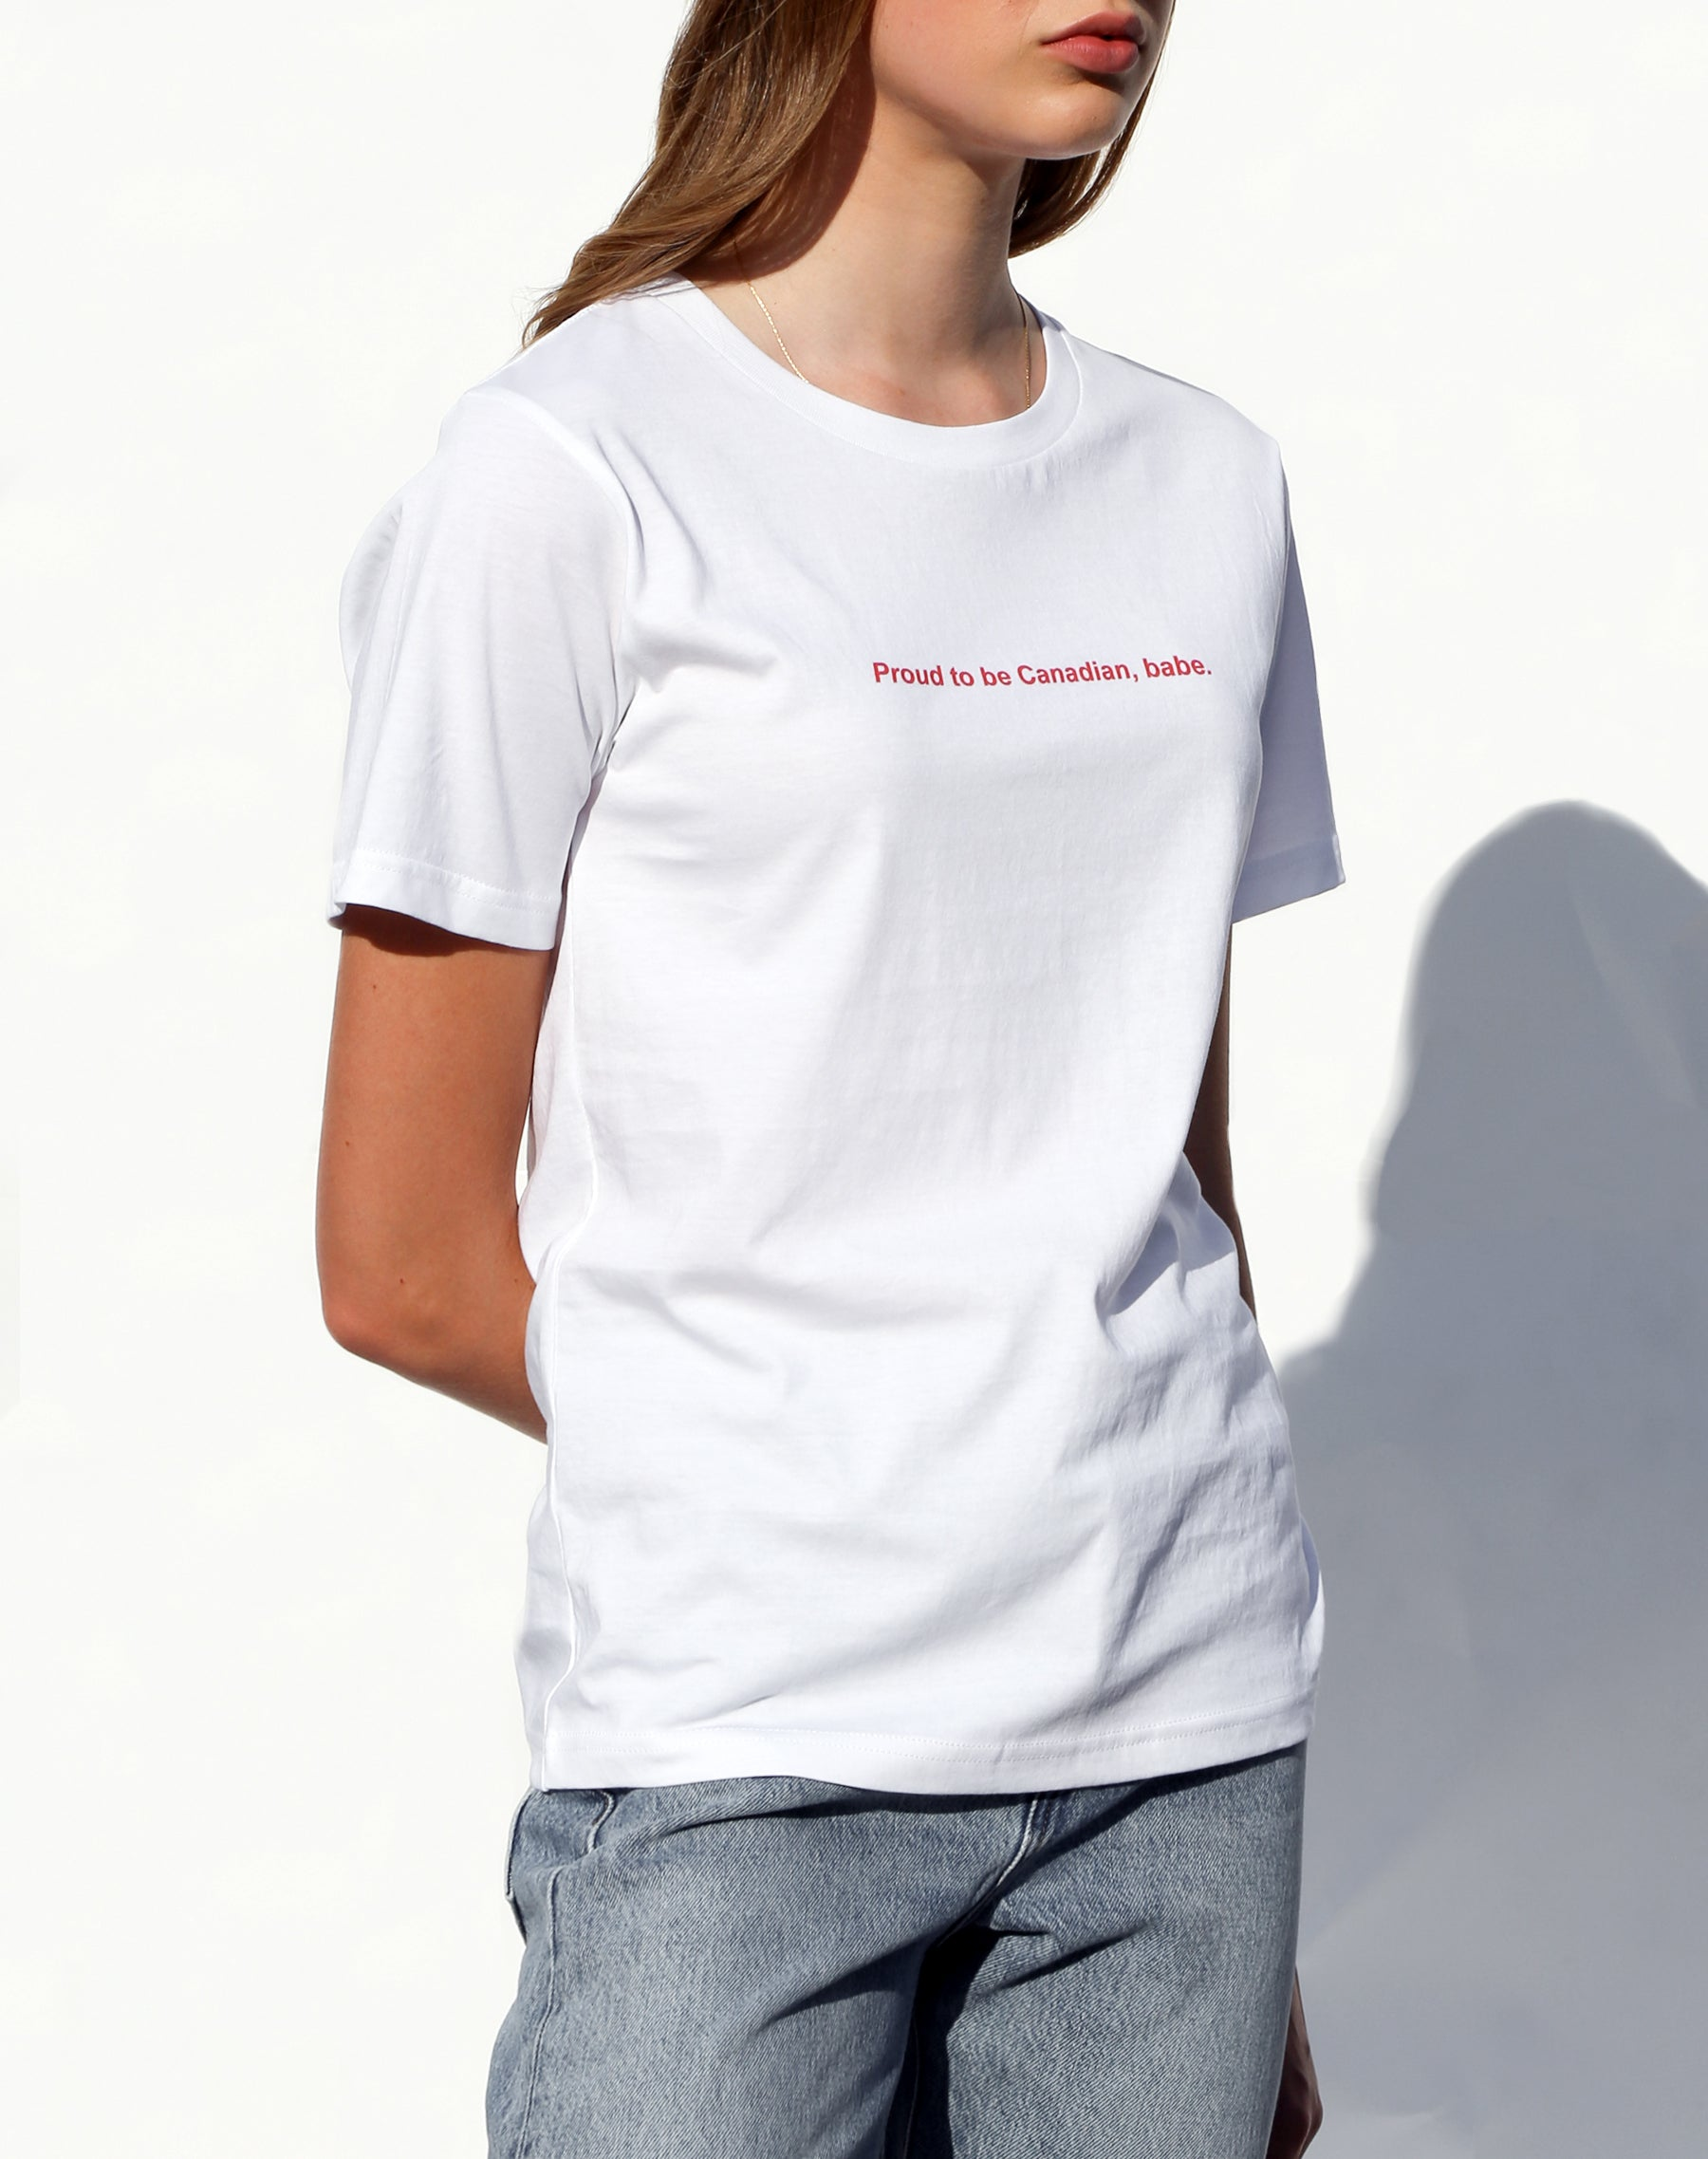 Side photo of the Proud to be Canadian classic crew neck tee in white from the Canada Day collection by Brunette the Label.